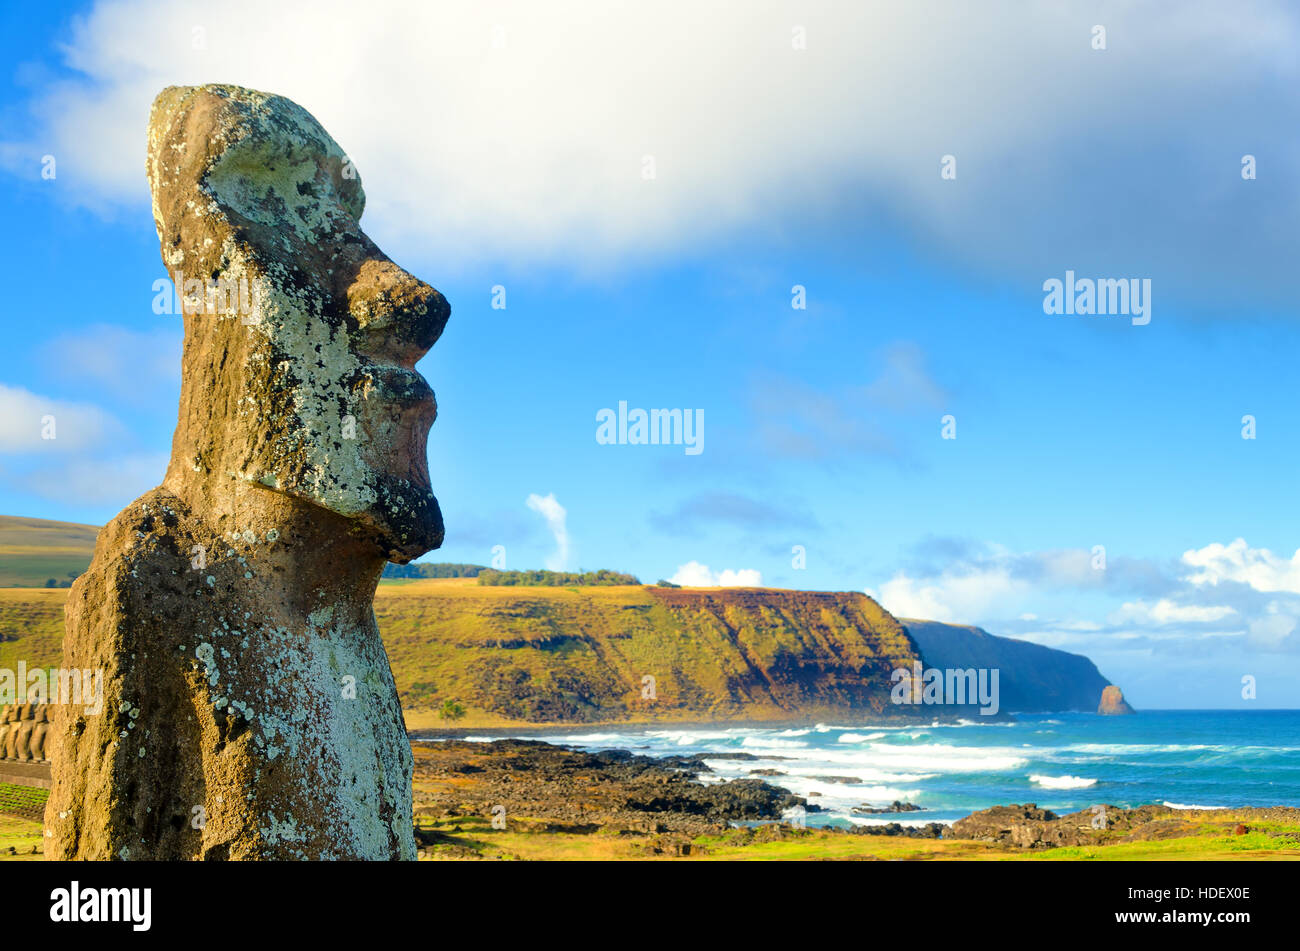 Closeup of large Moai at Ahu Tongariki on Easter Island, Chile - Stock Image